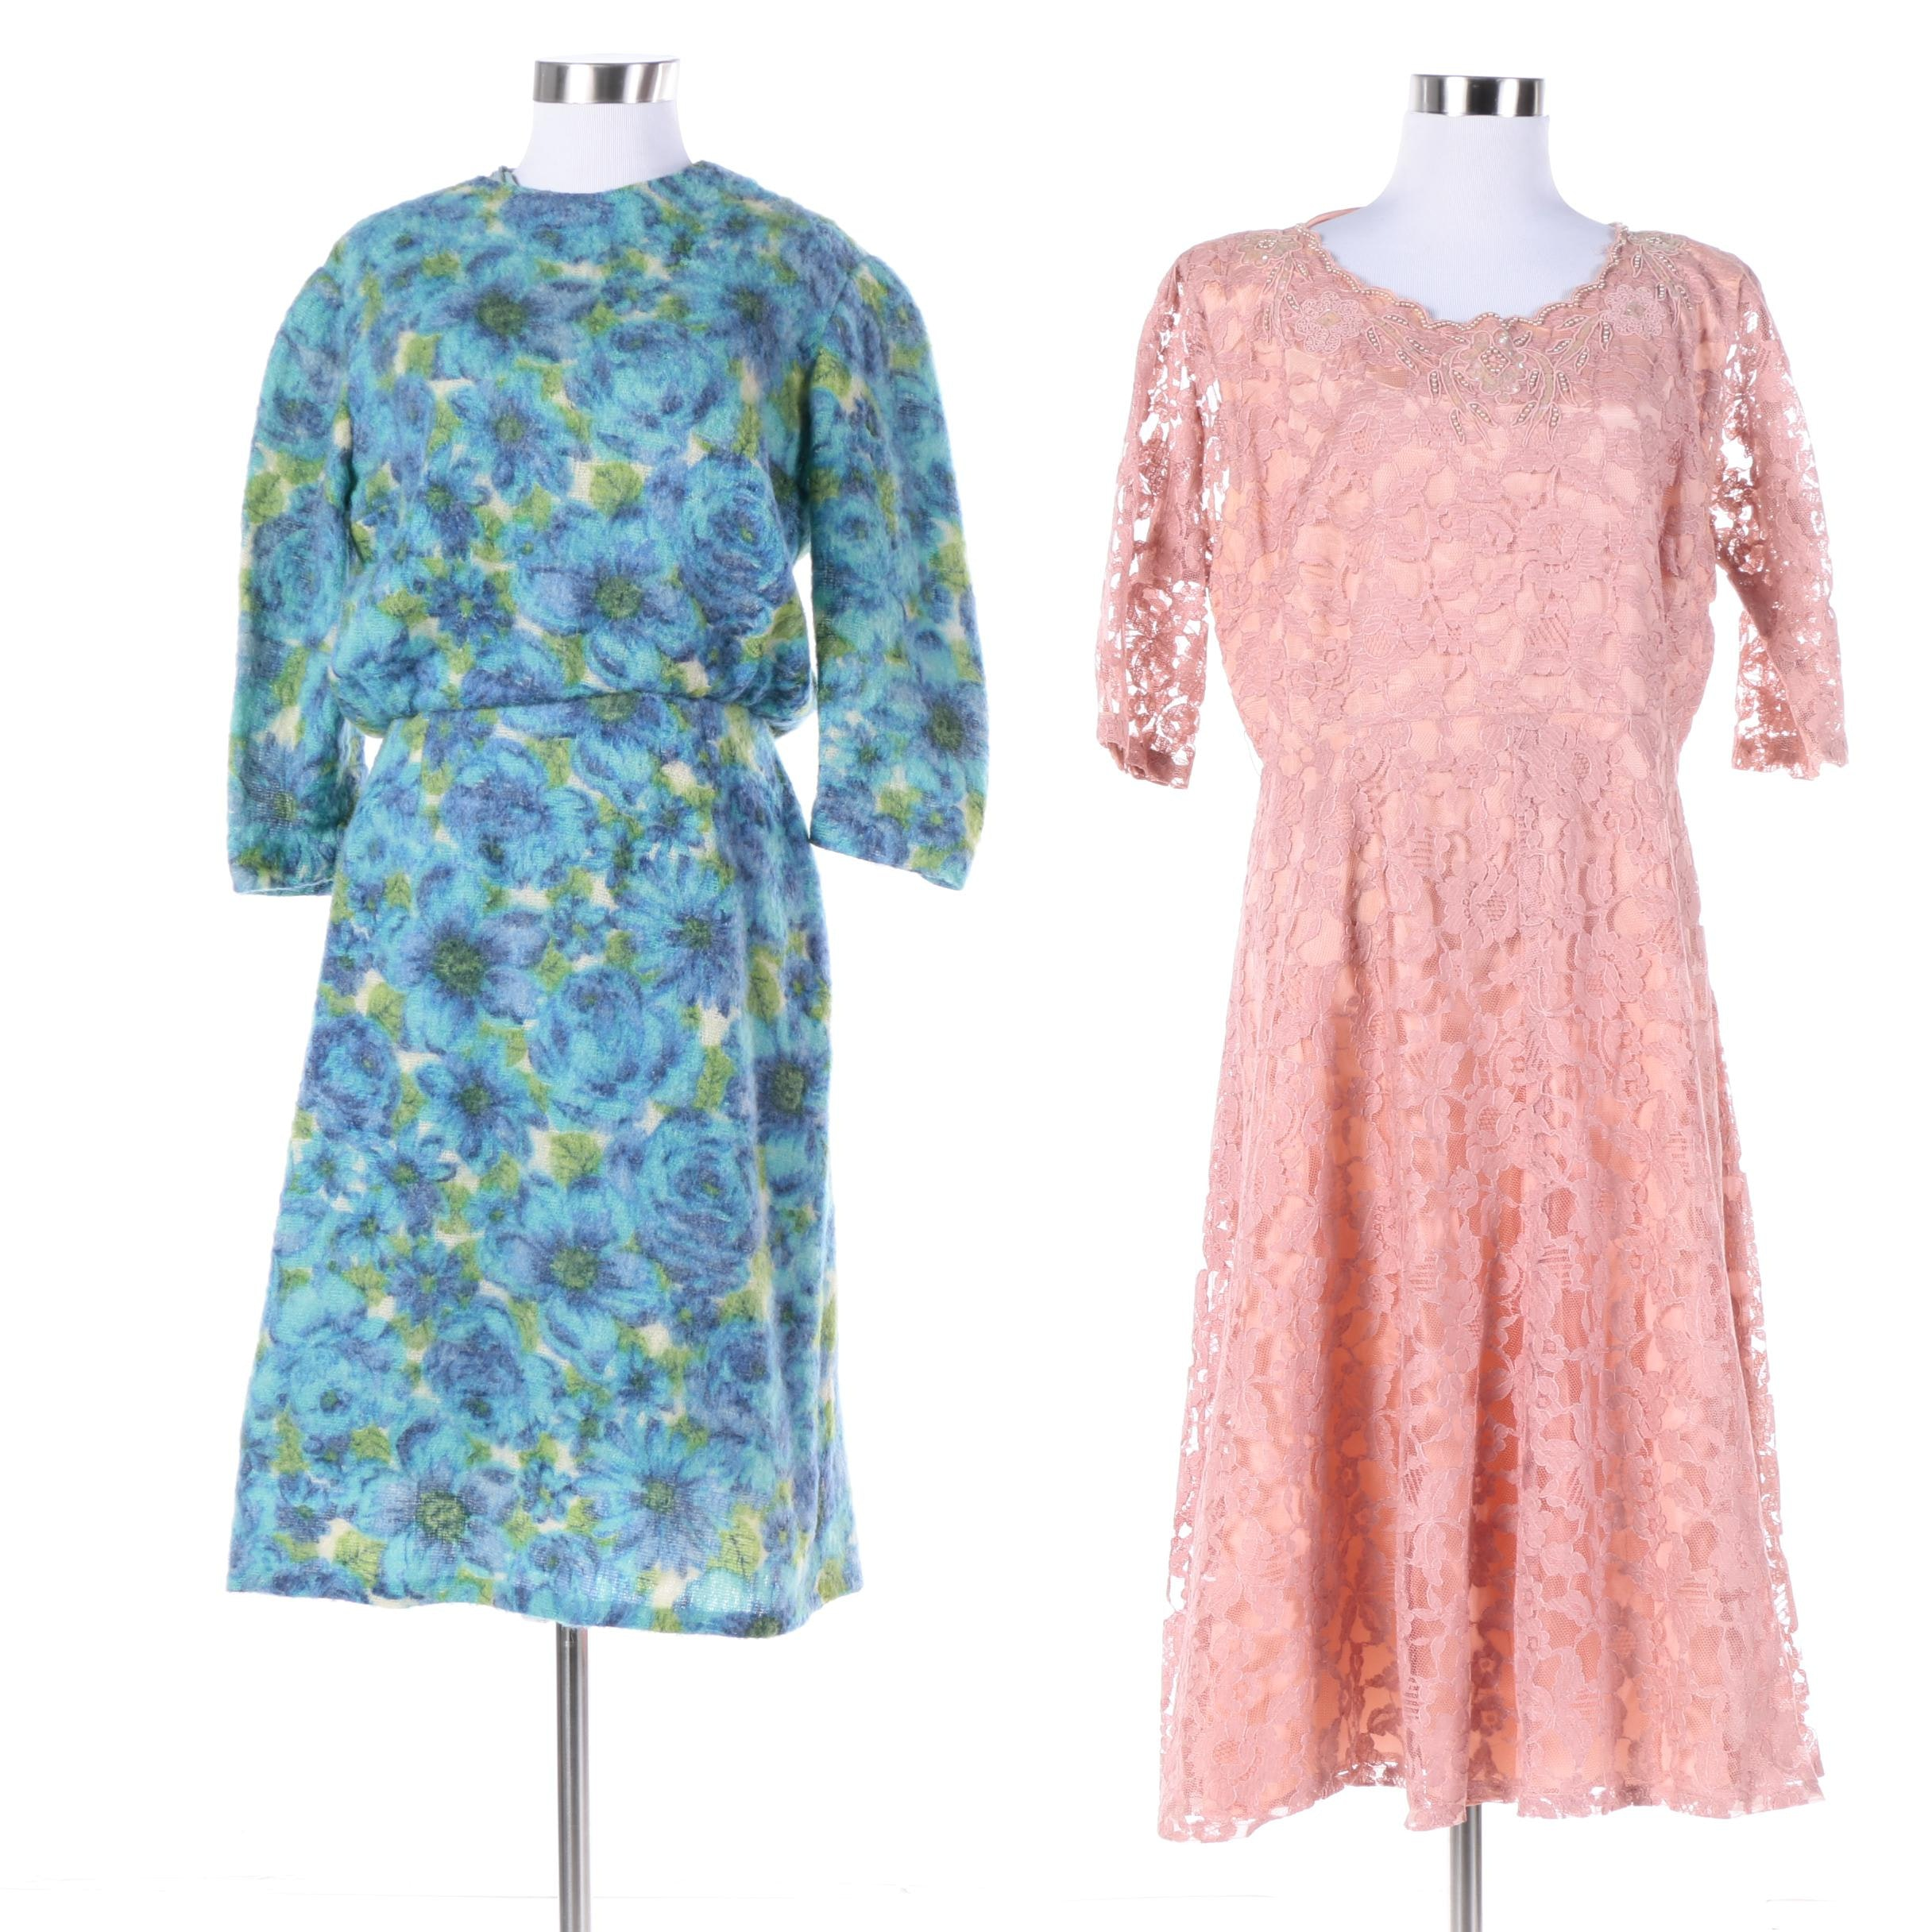 1960s Vintage Pink Lace and Blue Wool Spring Dresses